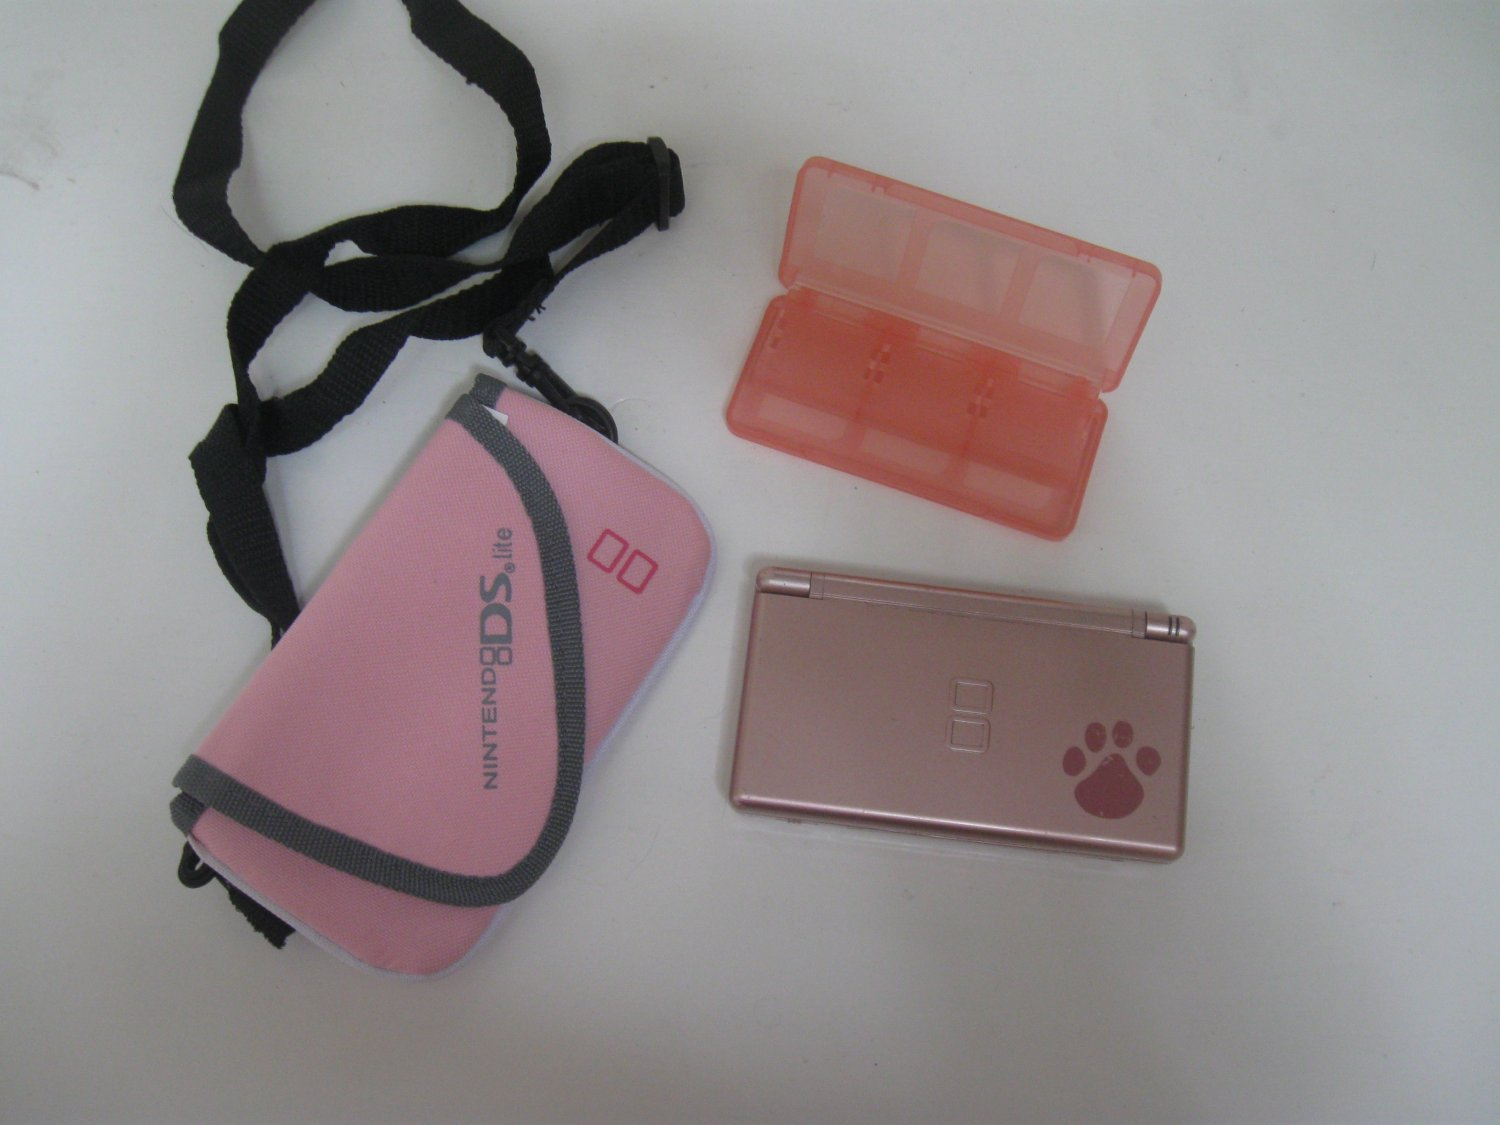 Special Edition Nintendogs Metallic Pink DS Lite